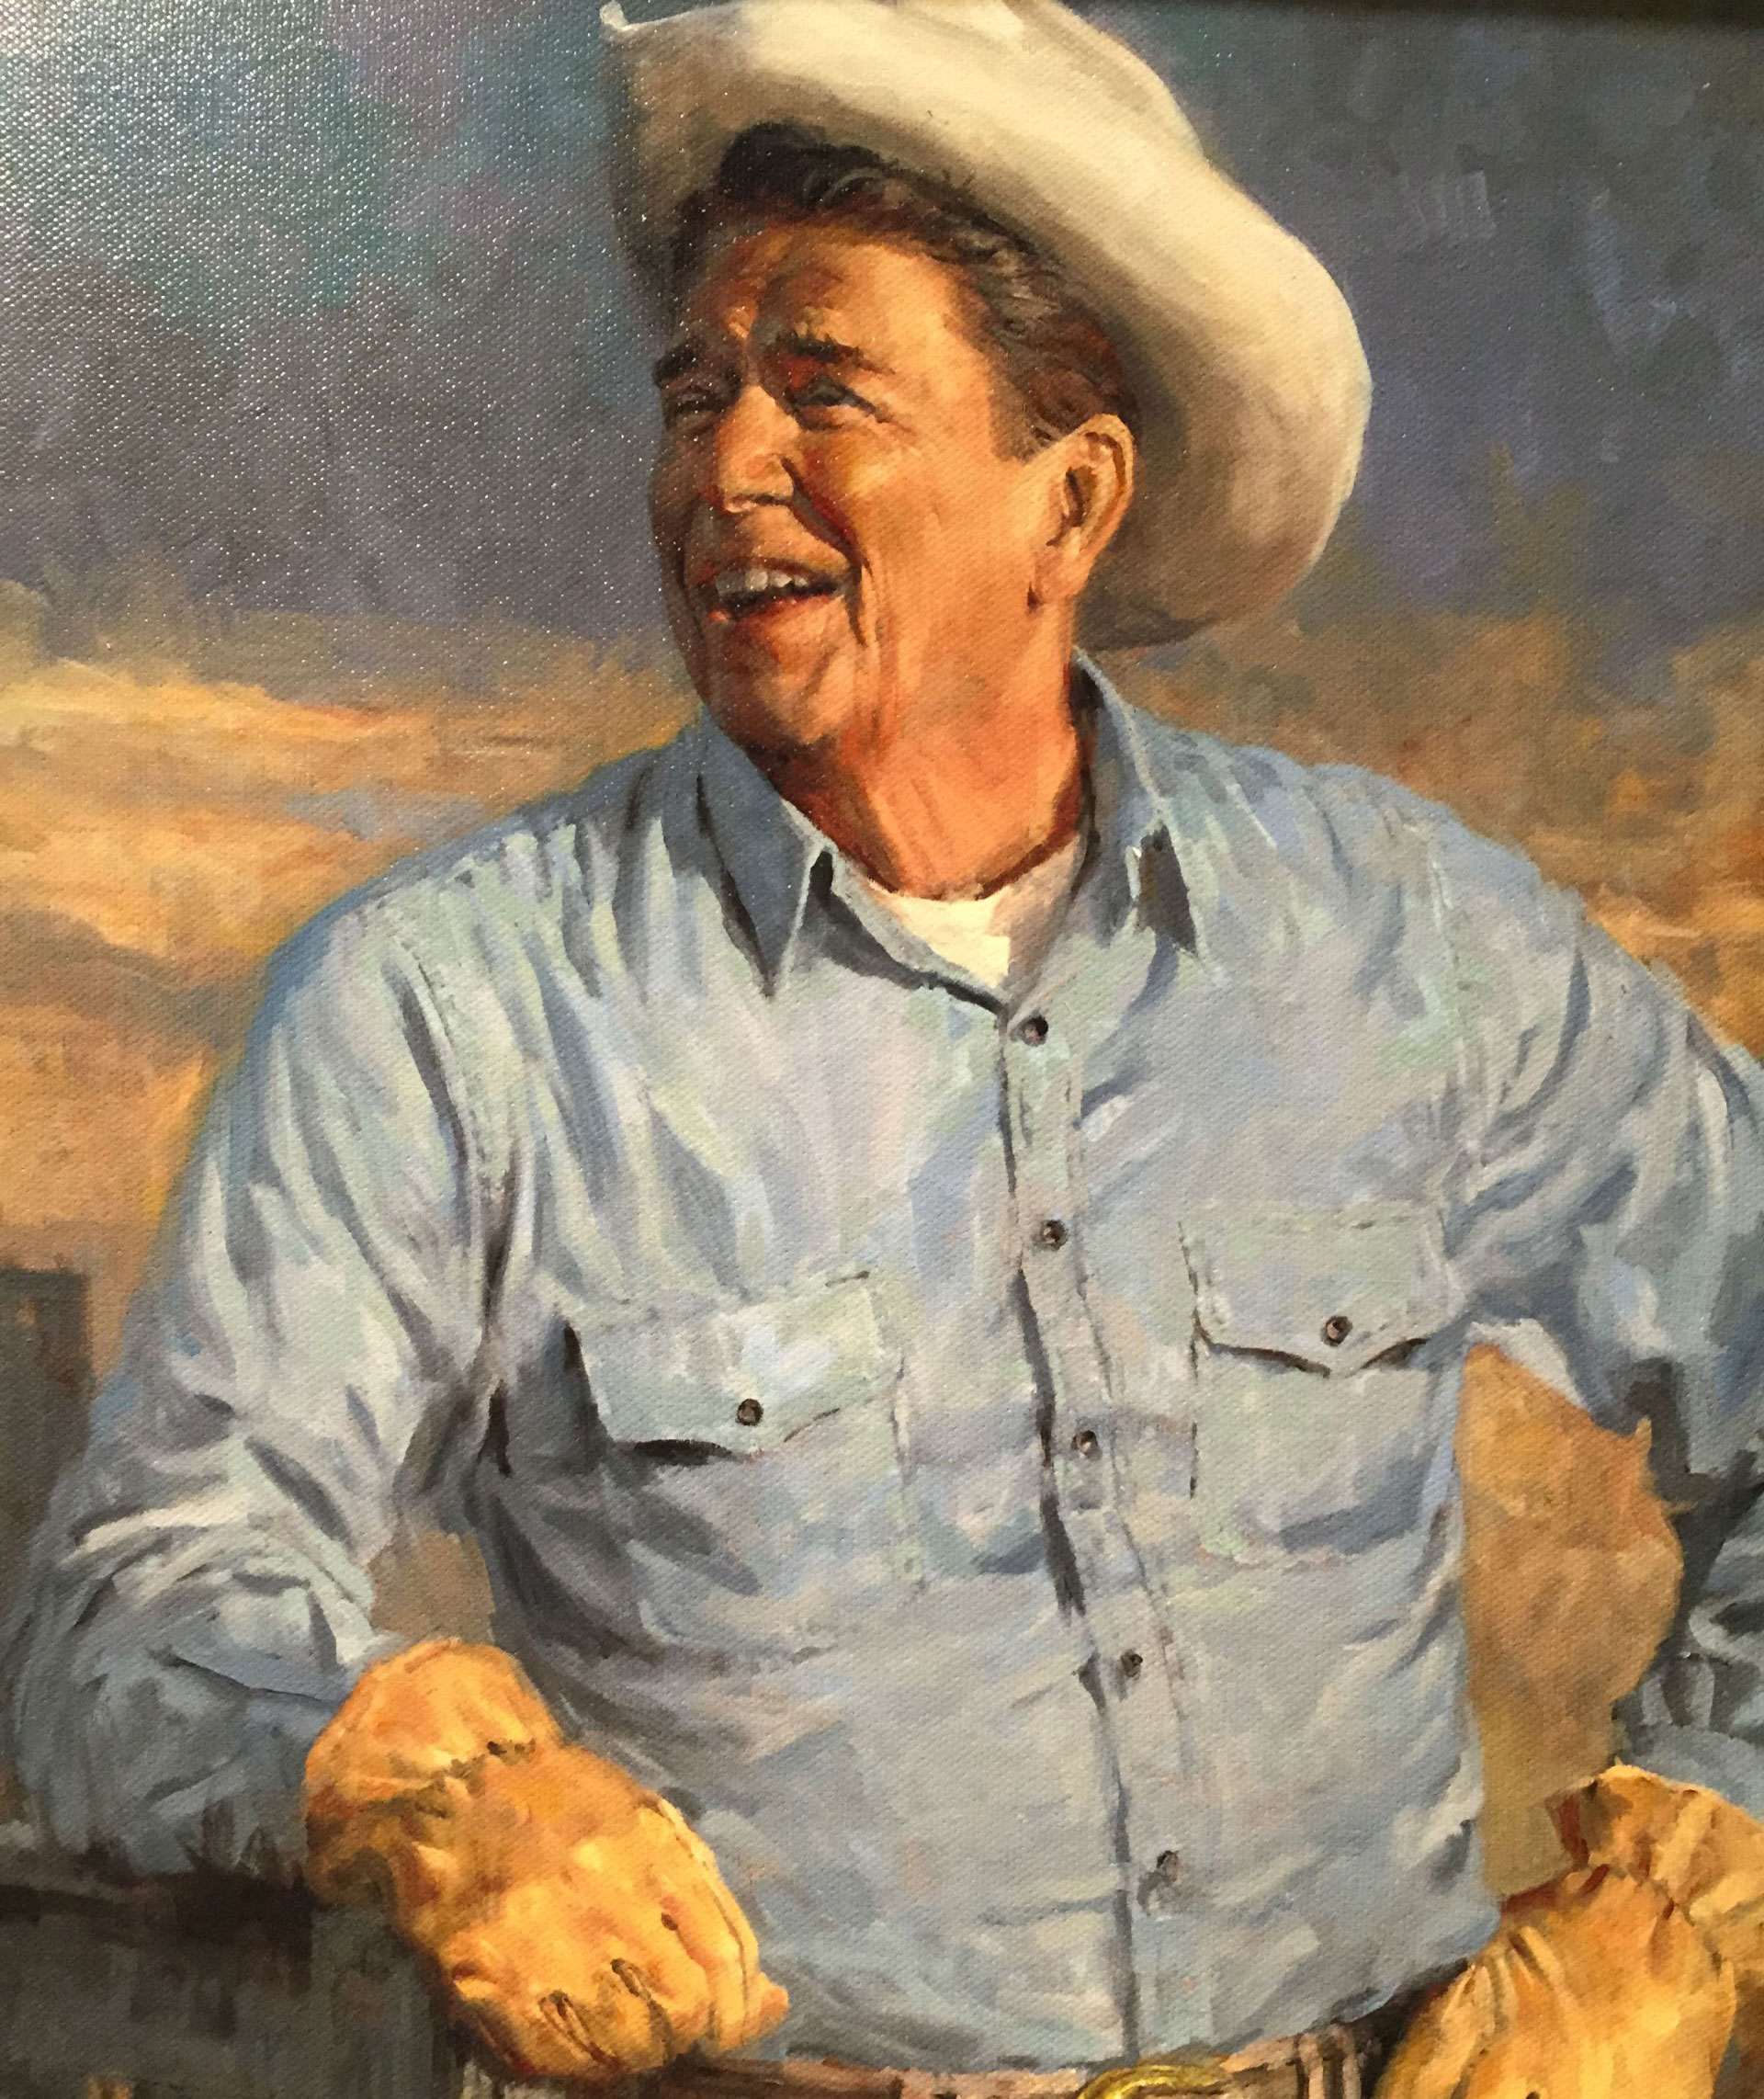 Ronald Reagan cultivated his image as a Western cowboy, a John Wayne-type common-sense, no-nonsense guy, as seen in this poster in the Reagan Library.